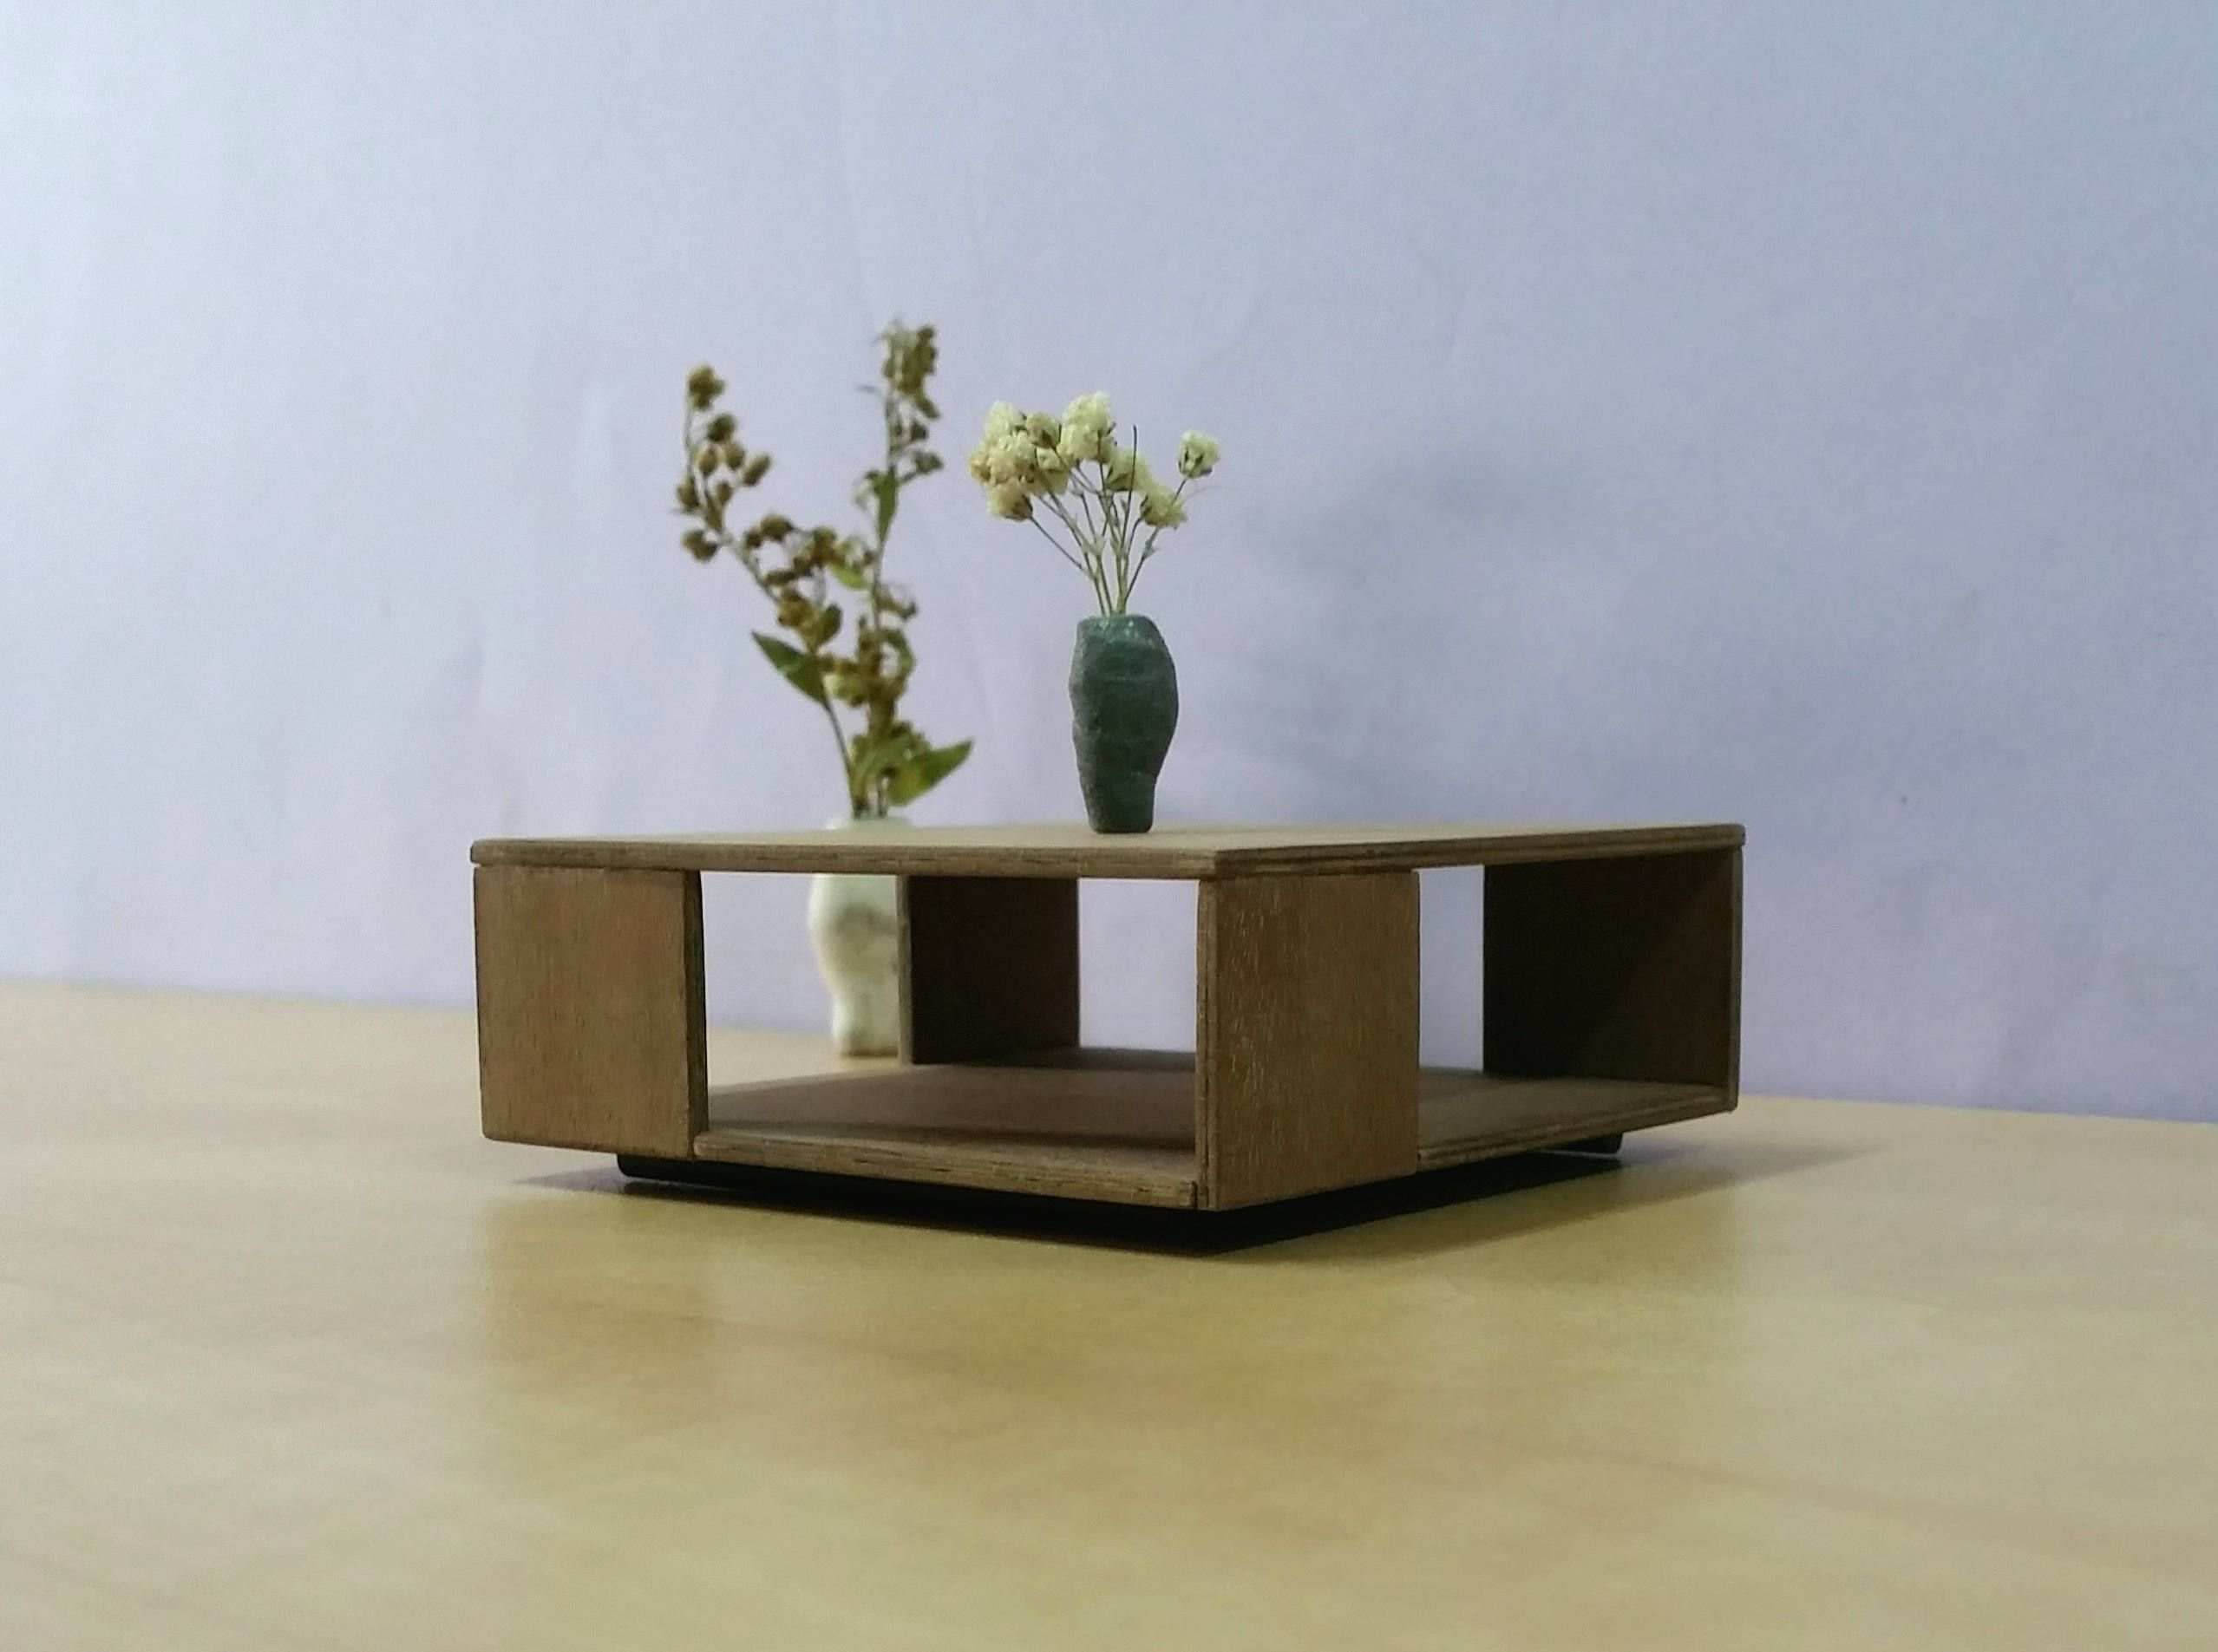 Groundpiece Square Low Table 1 12 Scale Model Collectible Miniature Furniture Modern Desig Contemporary Coffee Table Coffee Table Square Coffee Table Design